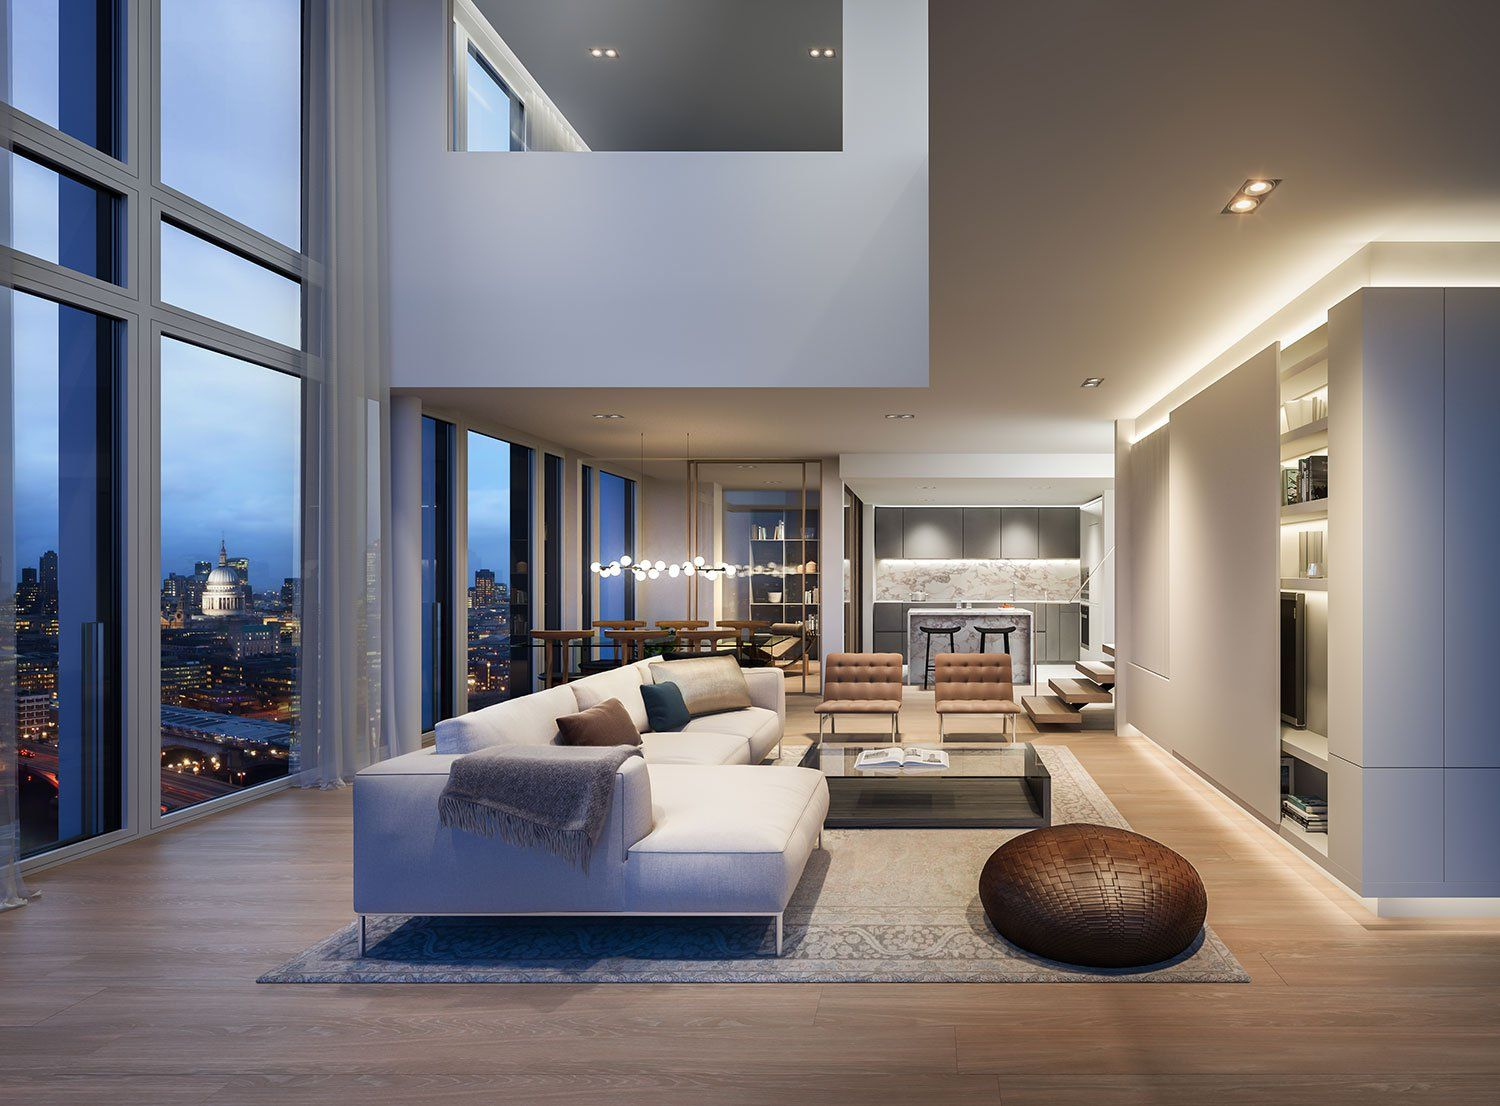 10 Breathtakingly Luxurious Apartments Where The World S Richest People Live In 2020 Luxury Apartments Home Sale House #rich #people #living #room